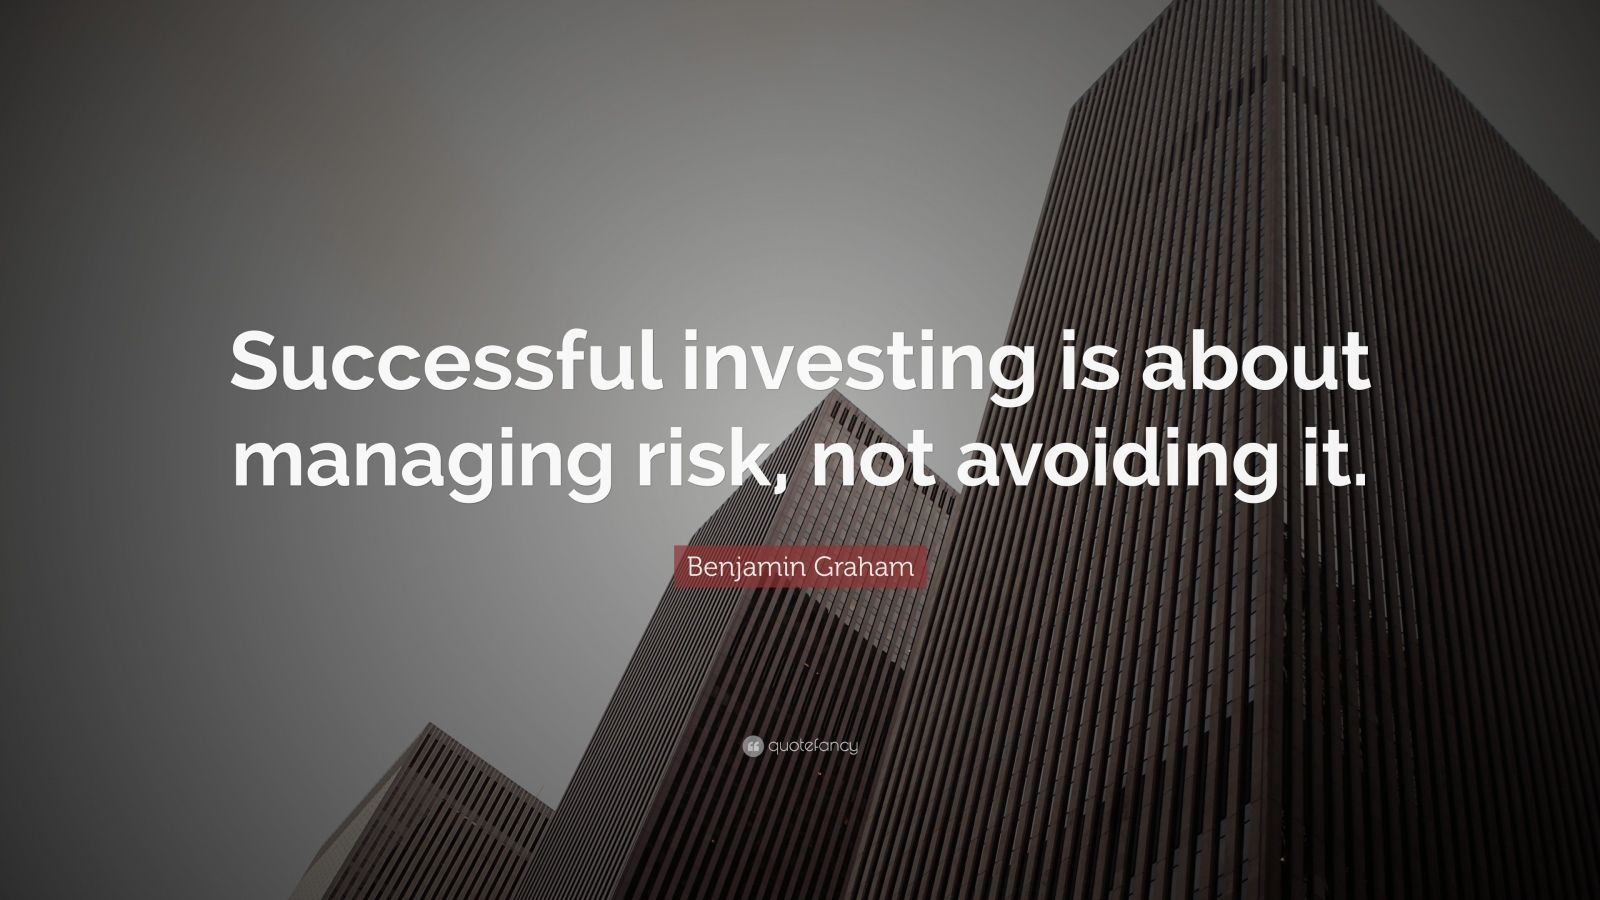 Drake Quotes Wallpaper Hd Benjamin Graham Quote Successful Investing Is About